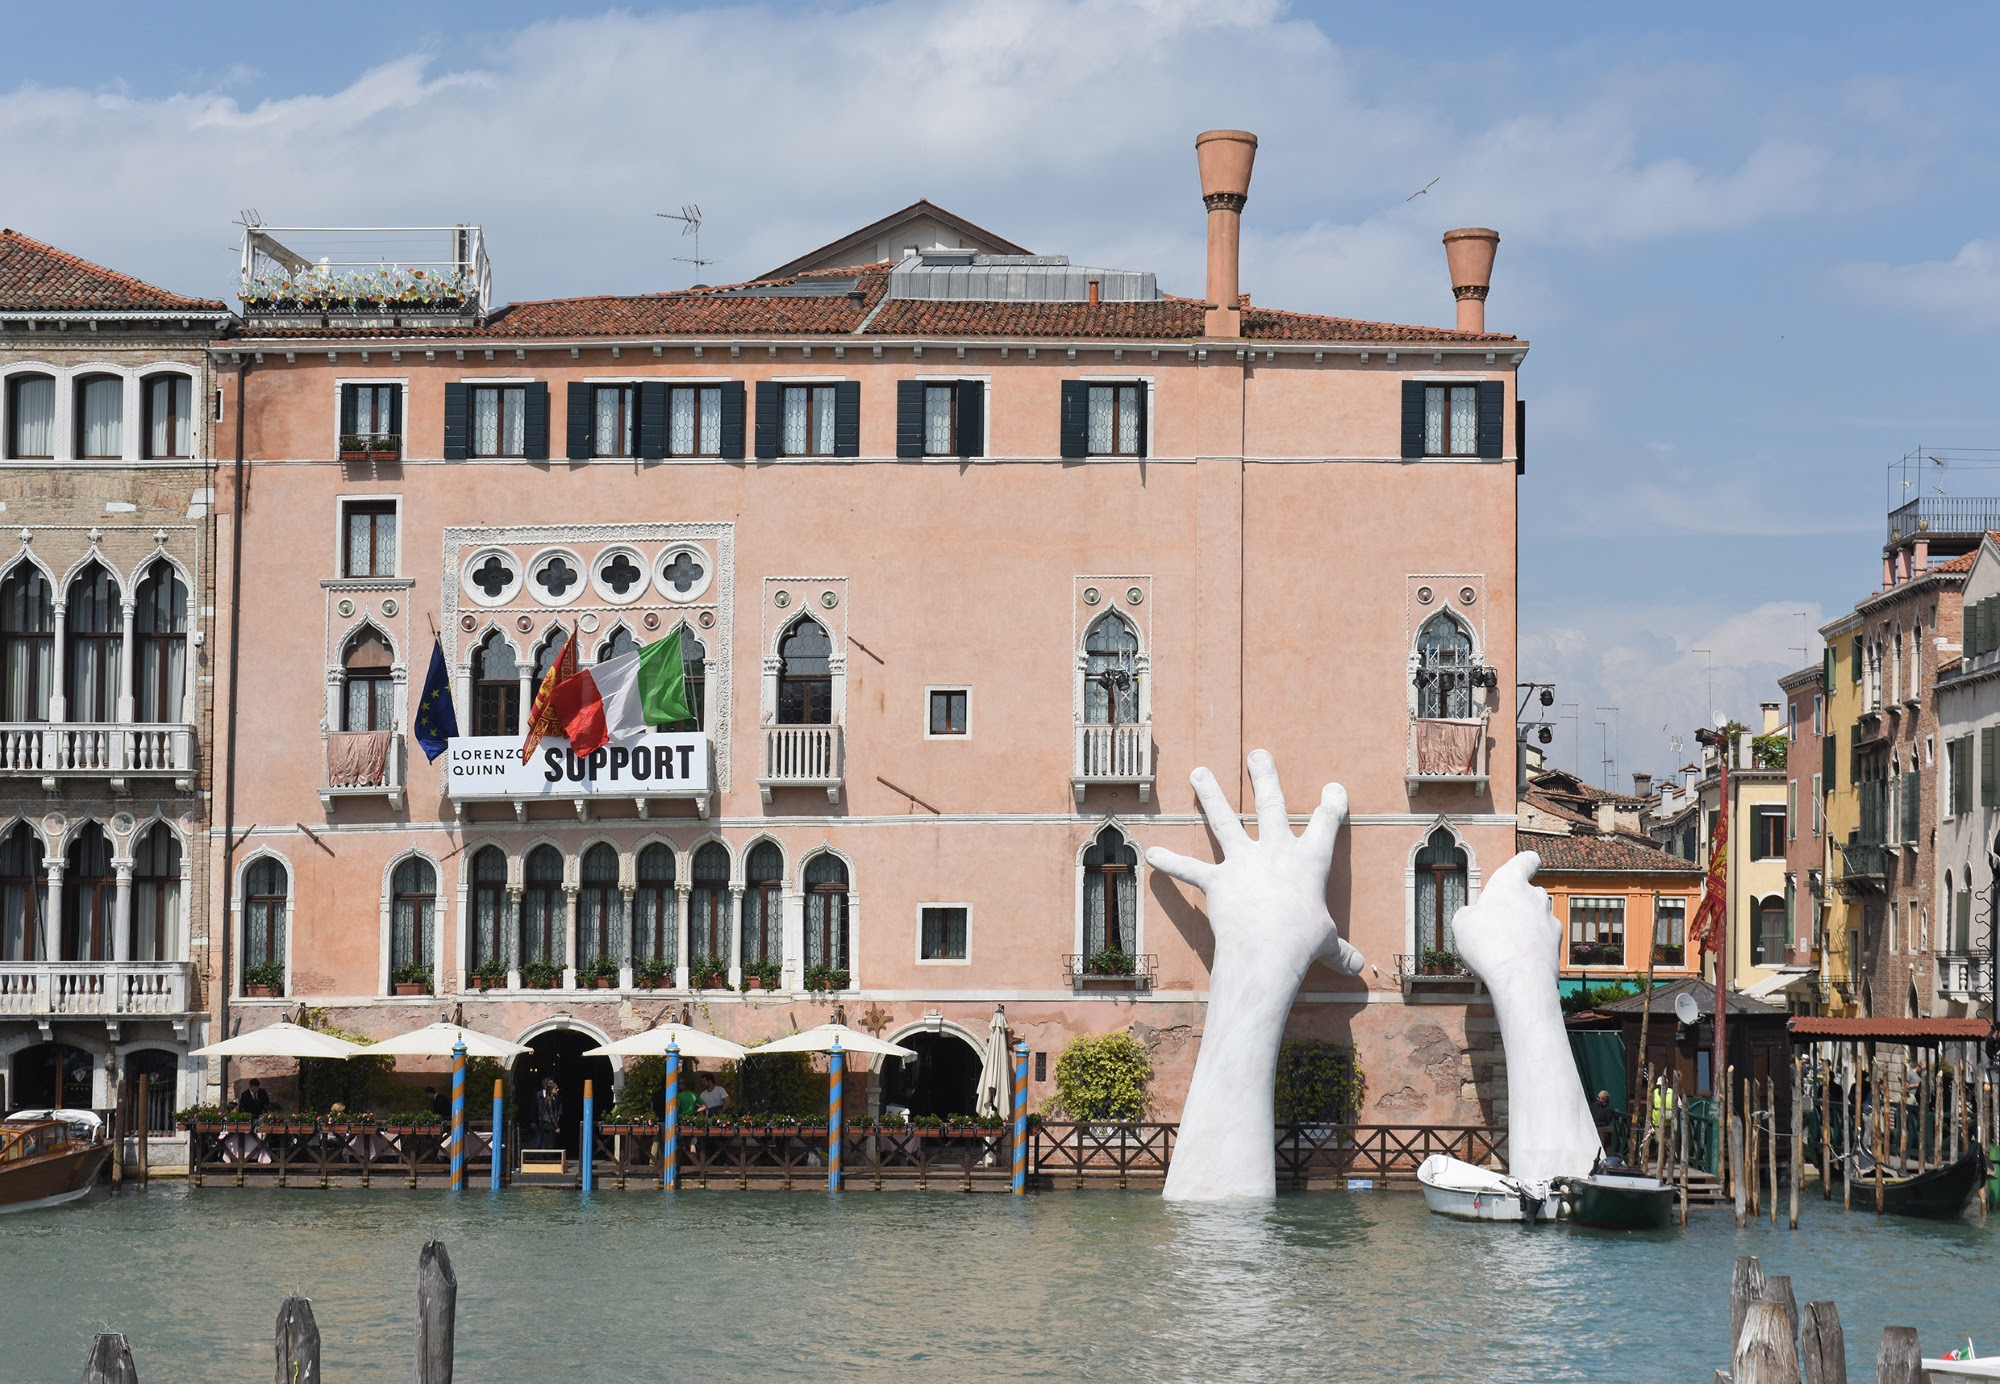 Lorenzo quinn 39 s new sculpture unveiled during venice for Artisti biennale venezia